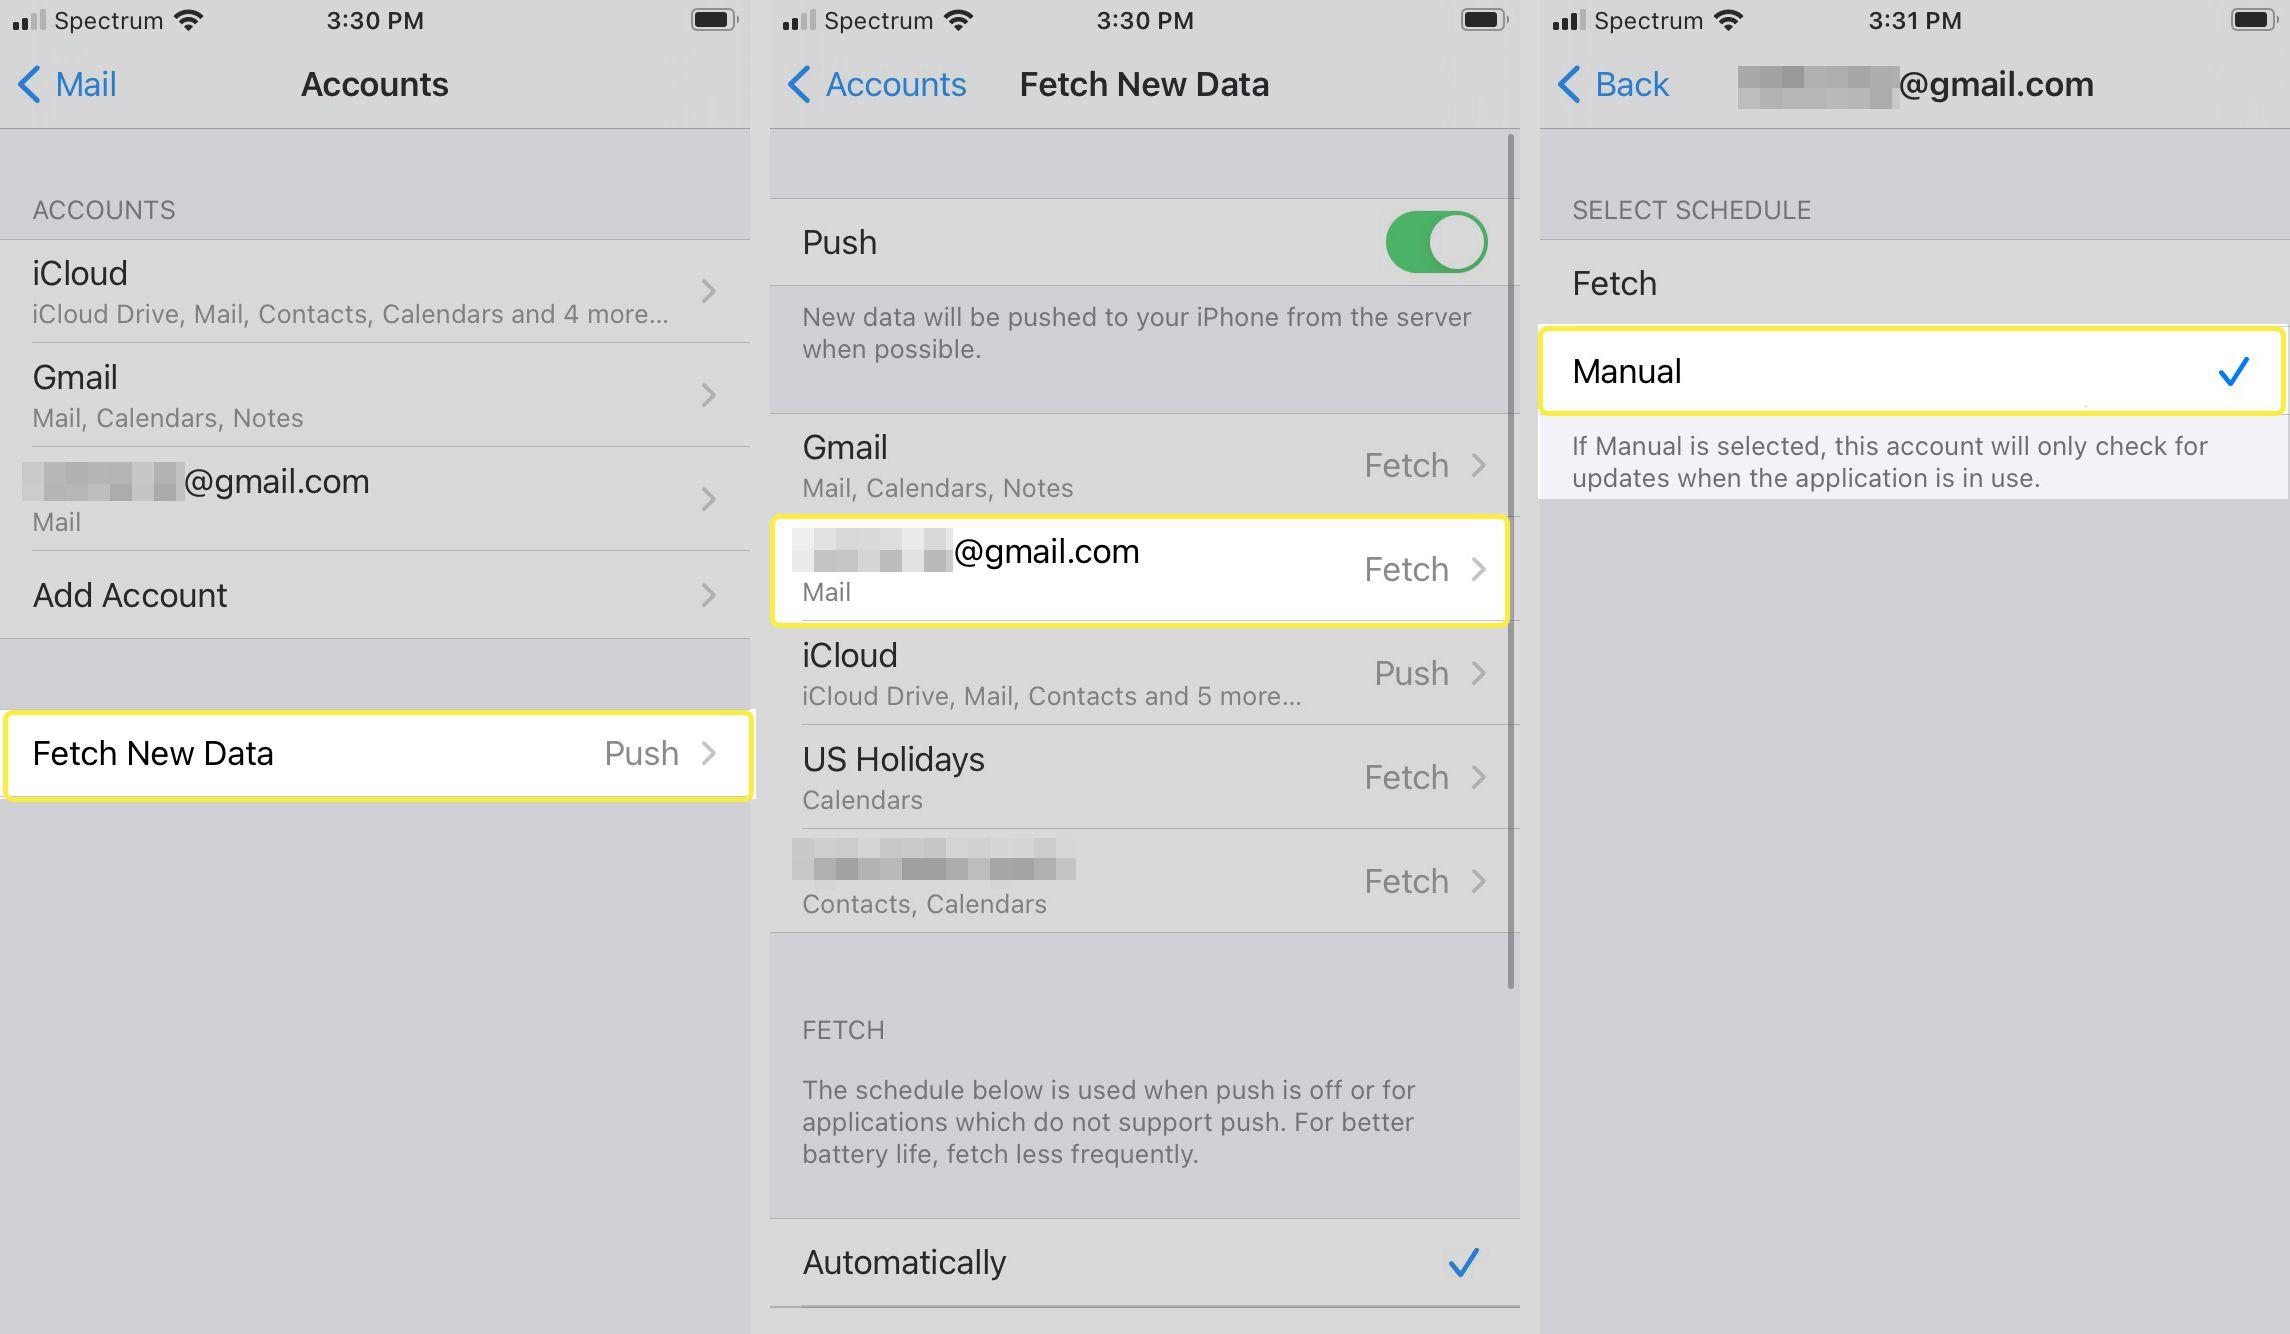 Passwords & Accounts, Fetch New Data, Manually buttons in iOS Settings